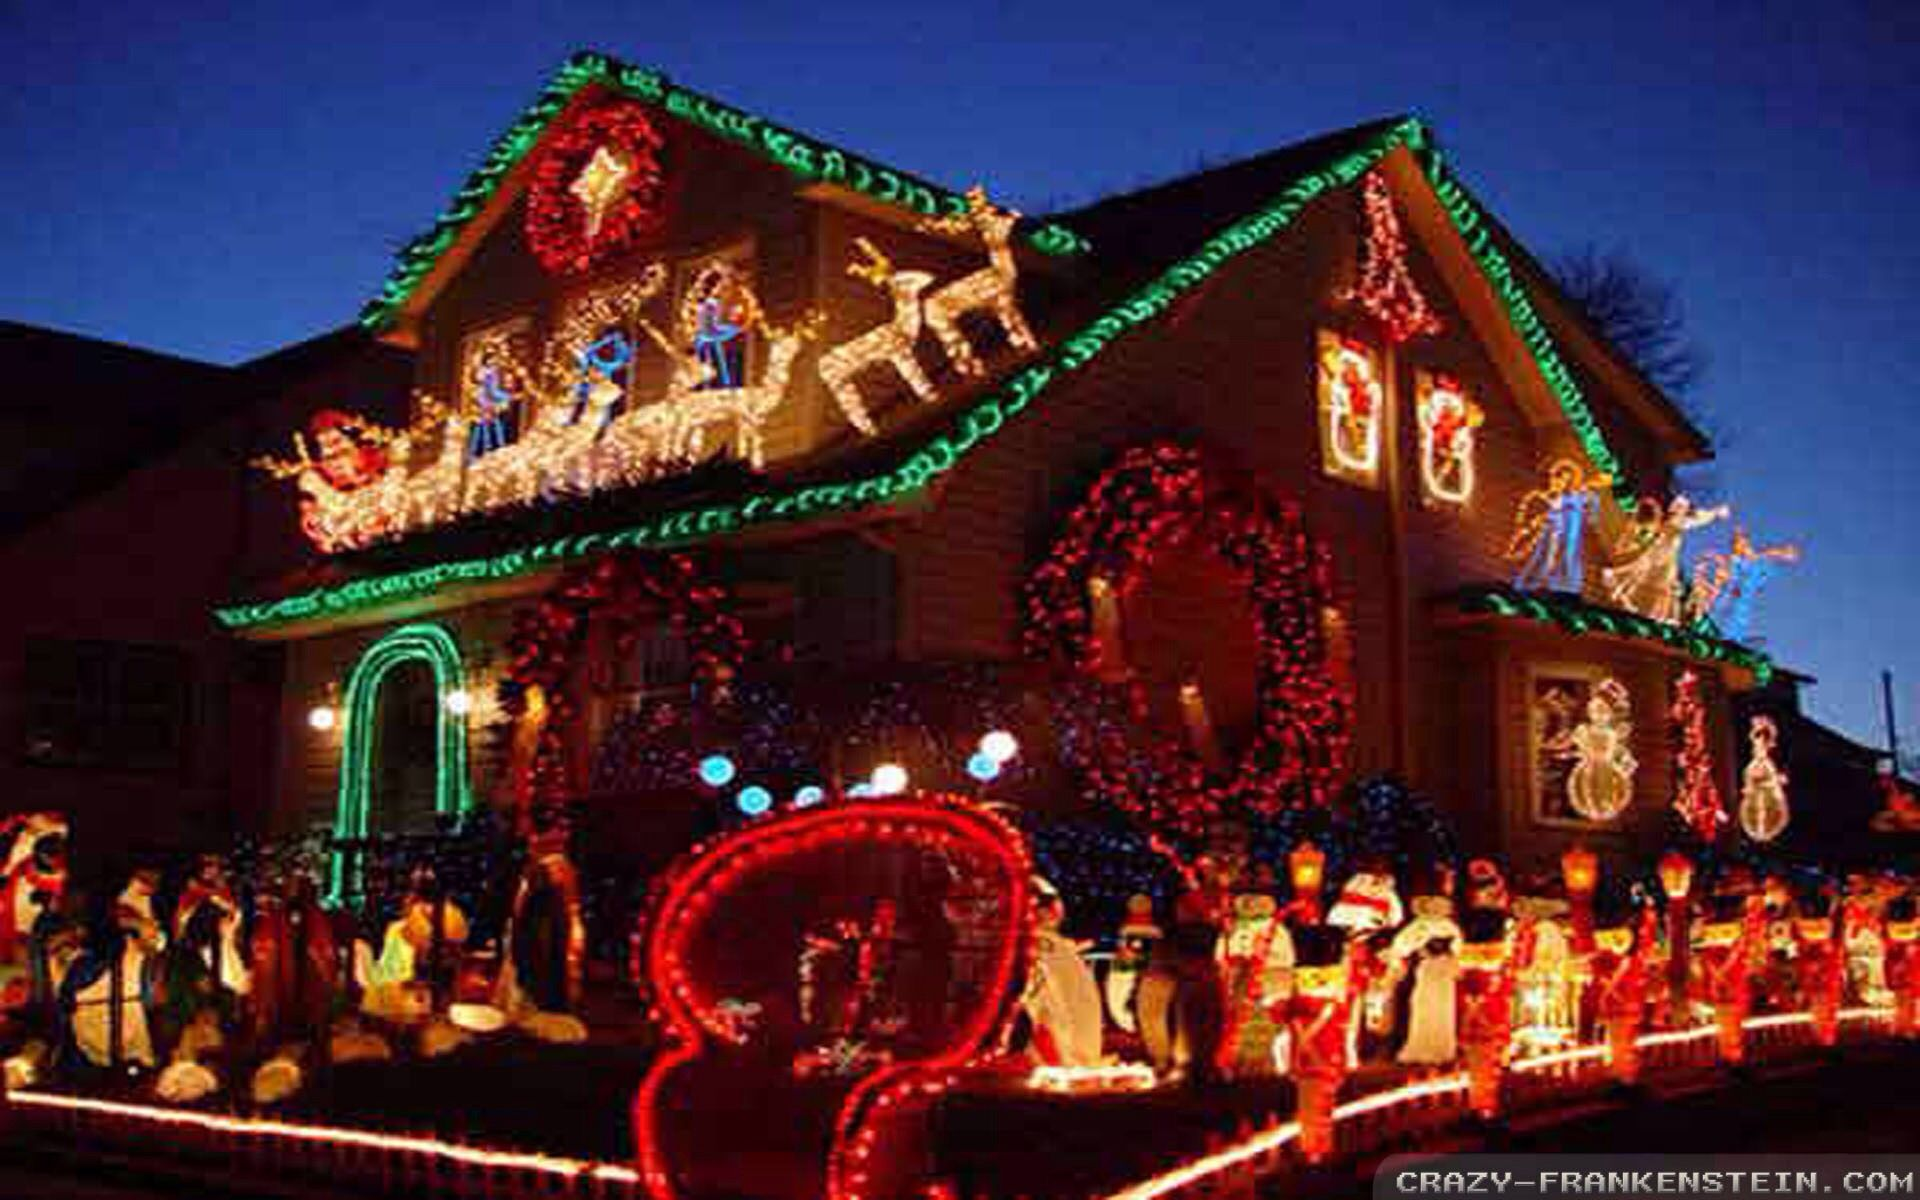 explore outside christmas decorations and more - Christmas House Decorations Outside